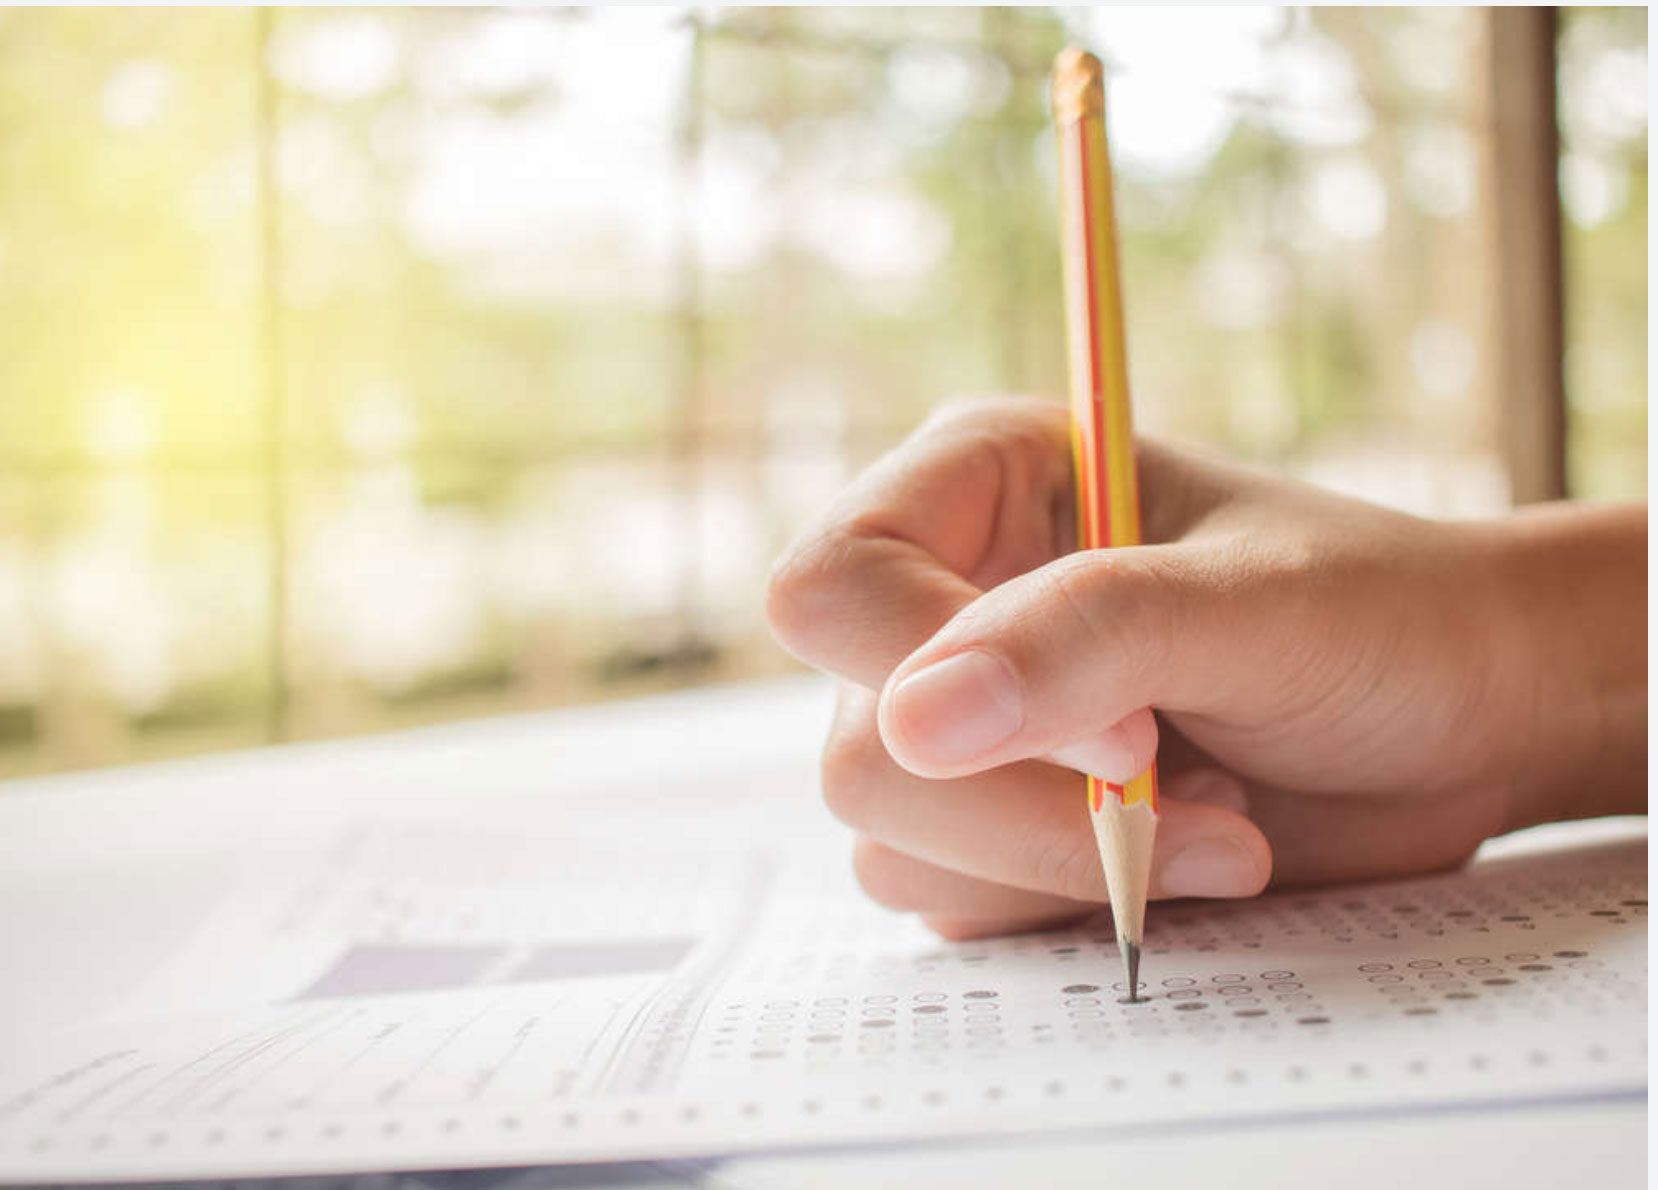 tips to prepare your students for tests